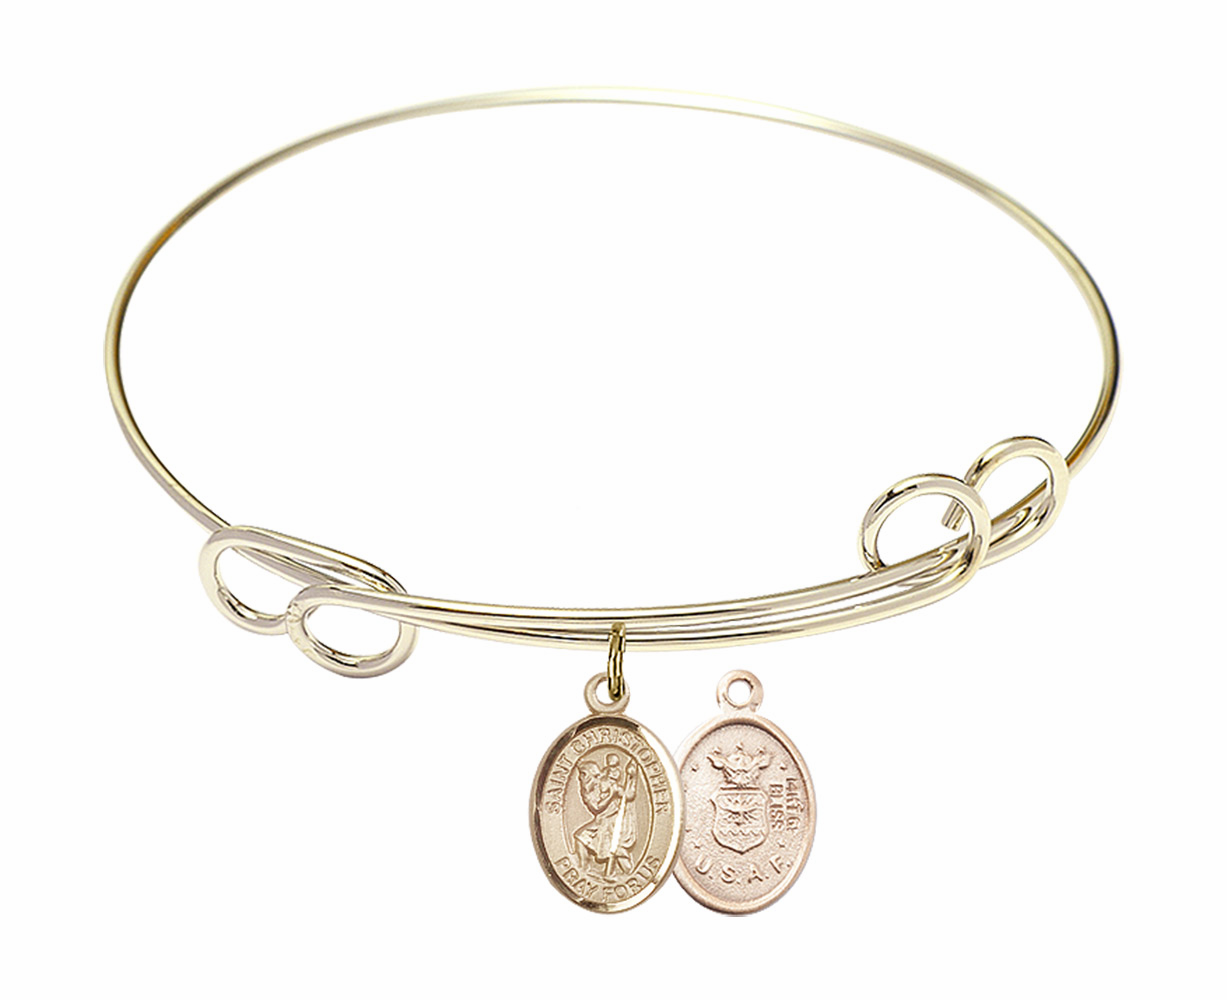 Gold-Filled Twisted St Christopher Air Force Bangle Charm Bracelet by Bliss